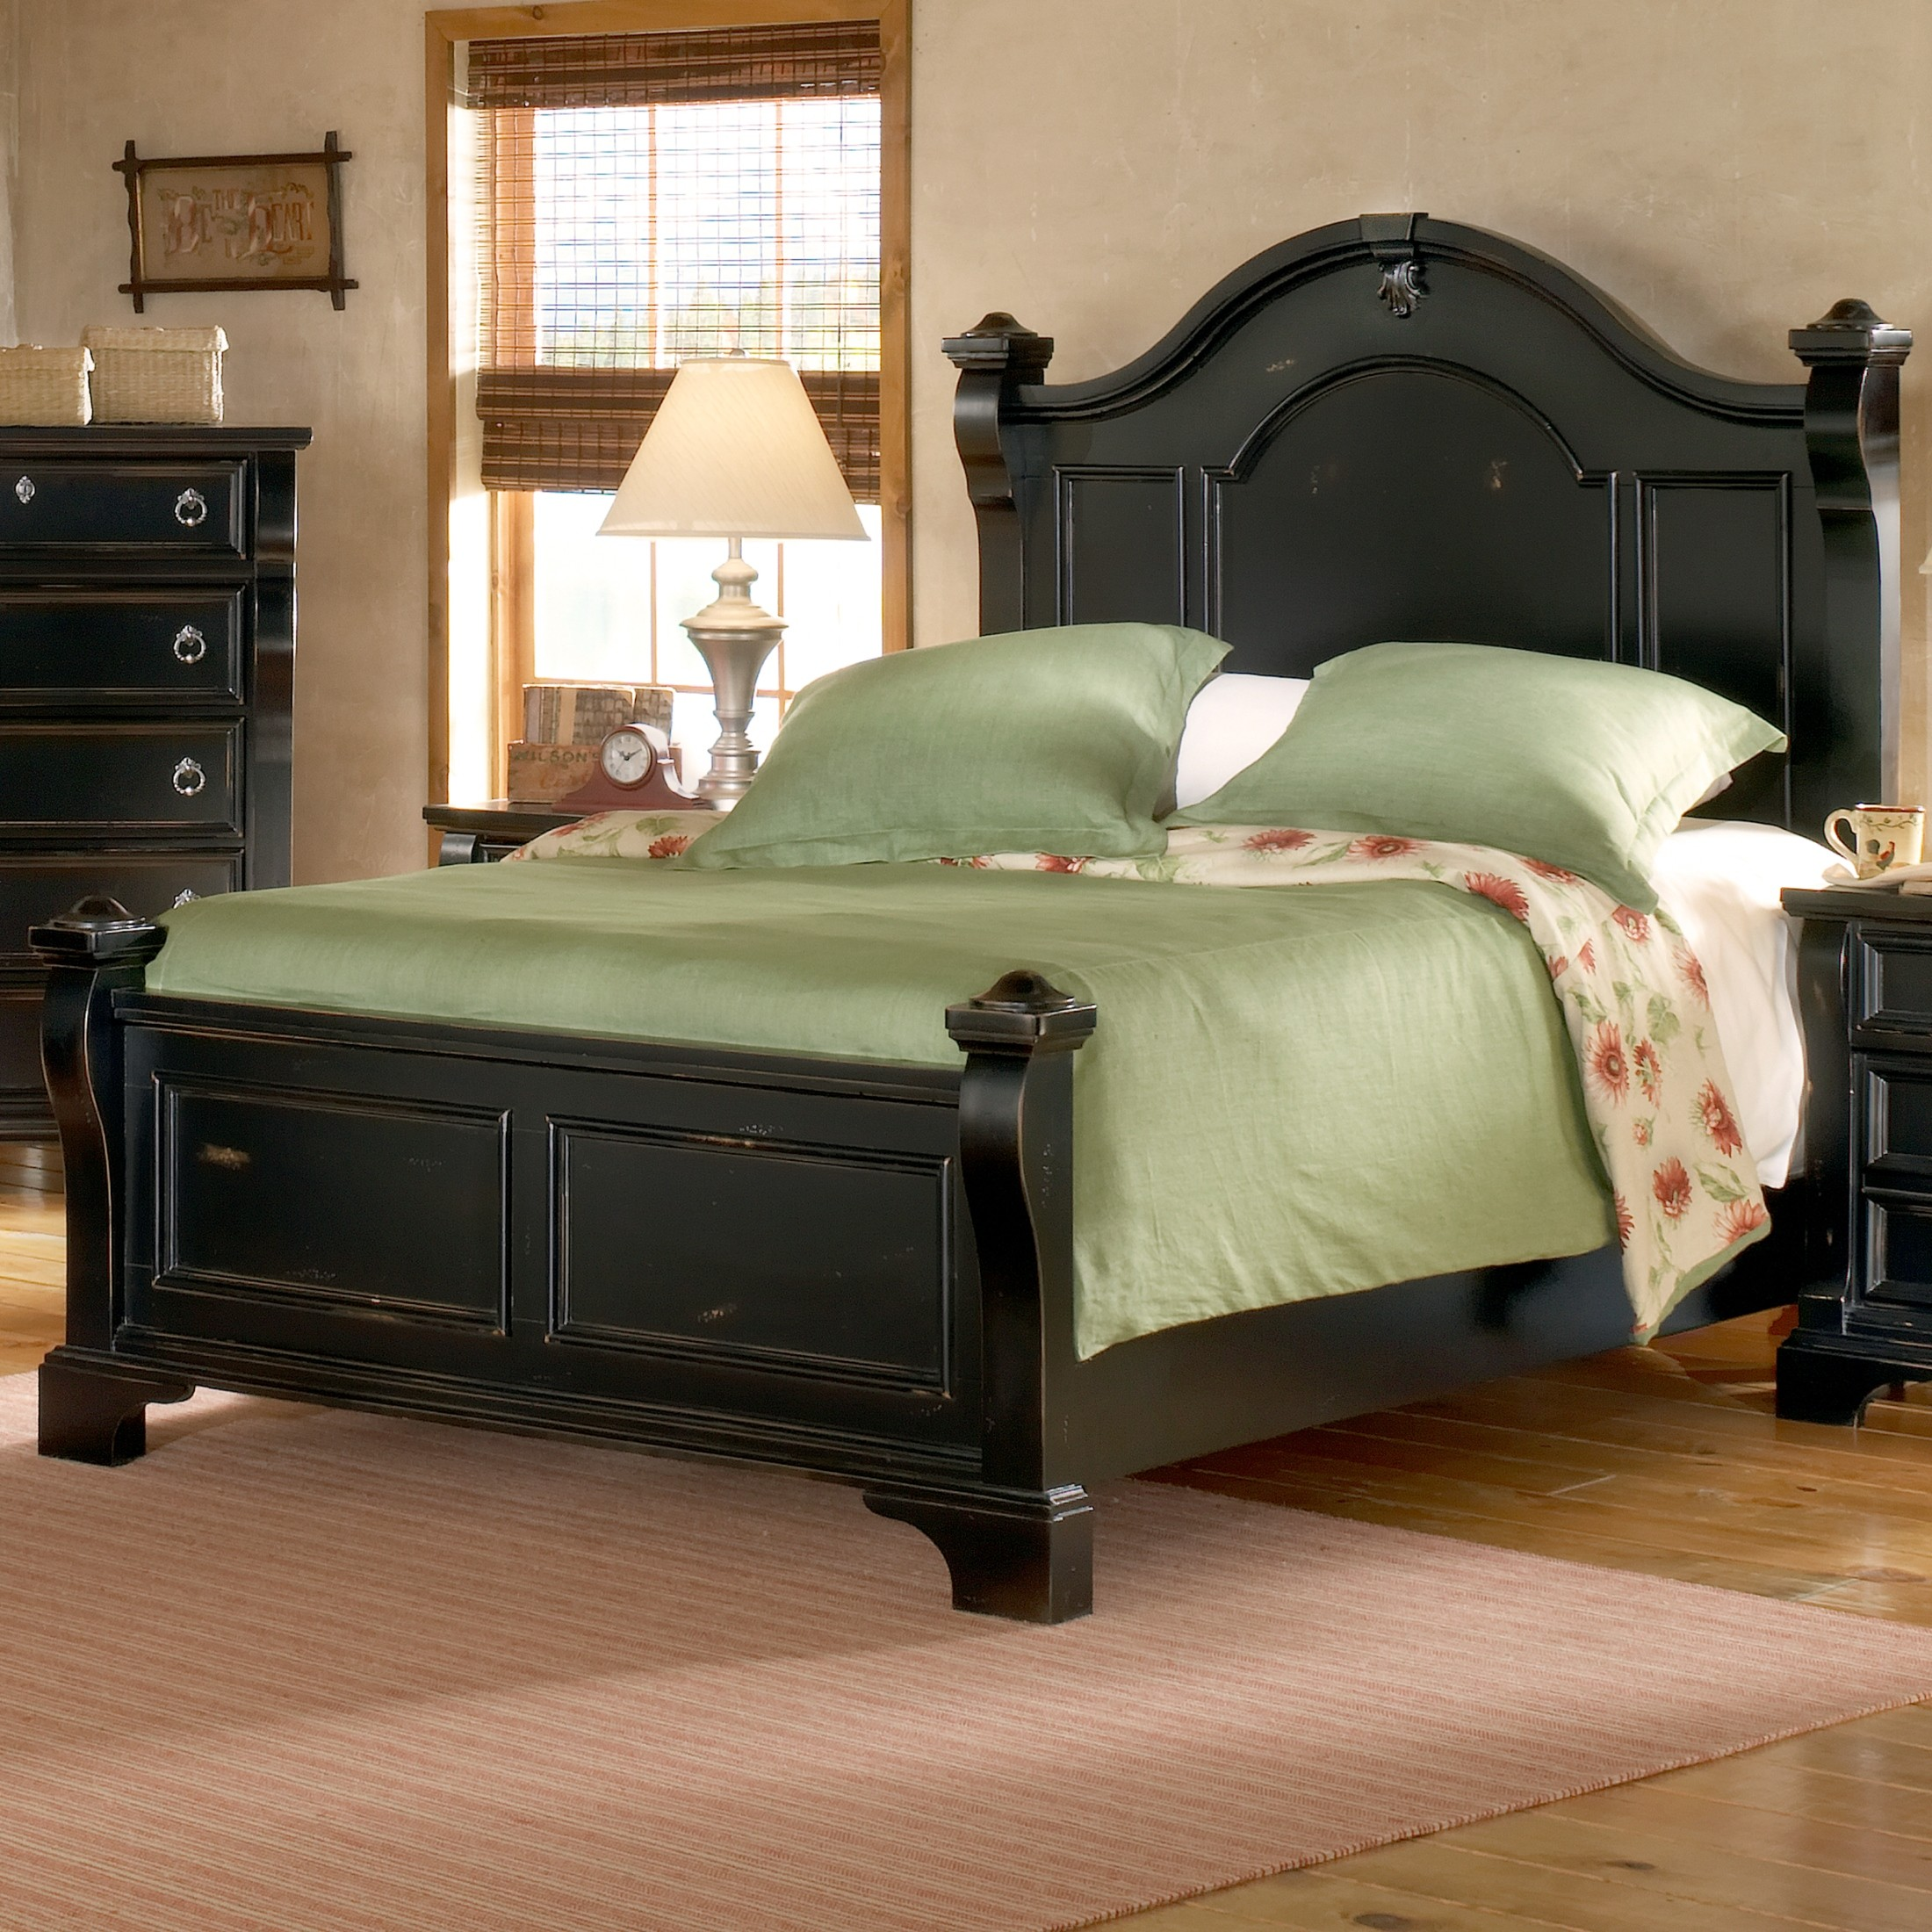 Heirloom Black King Poster Bed From American Woodcrafters